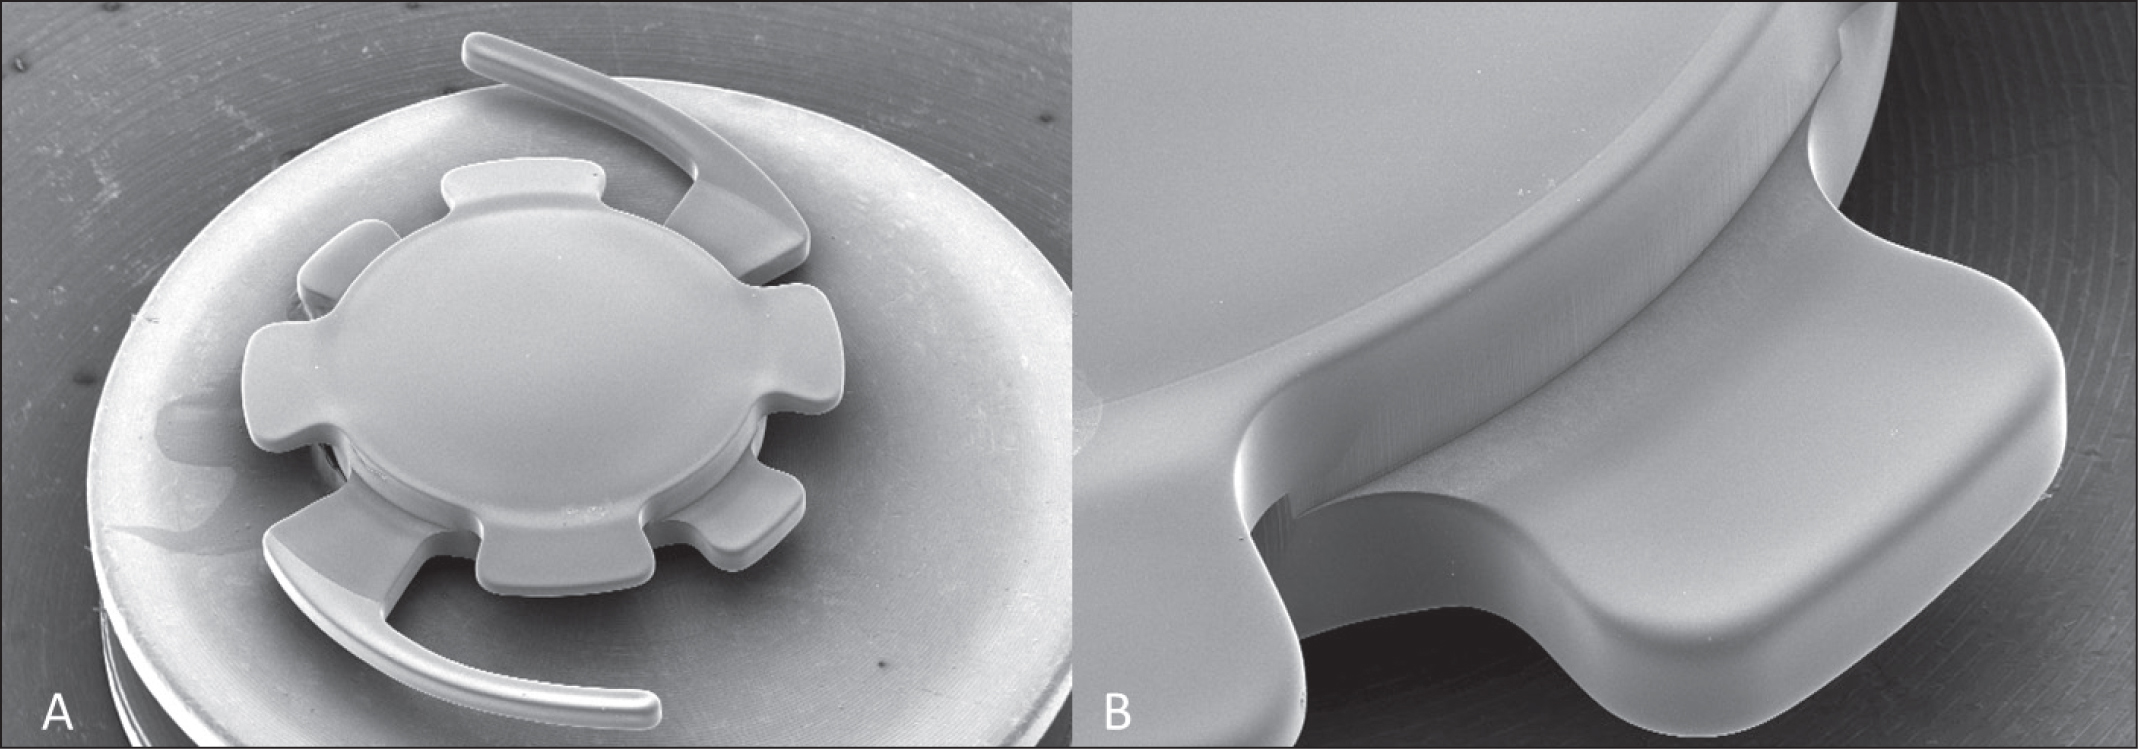 Scanning electron microscope images of the 90F intraocular lens (Morcher GmbH, Stuttgart, Germany). (A) Overview. (B) Flank between anterior and posterior haptic lips.